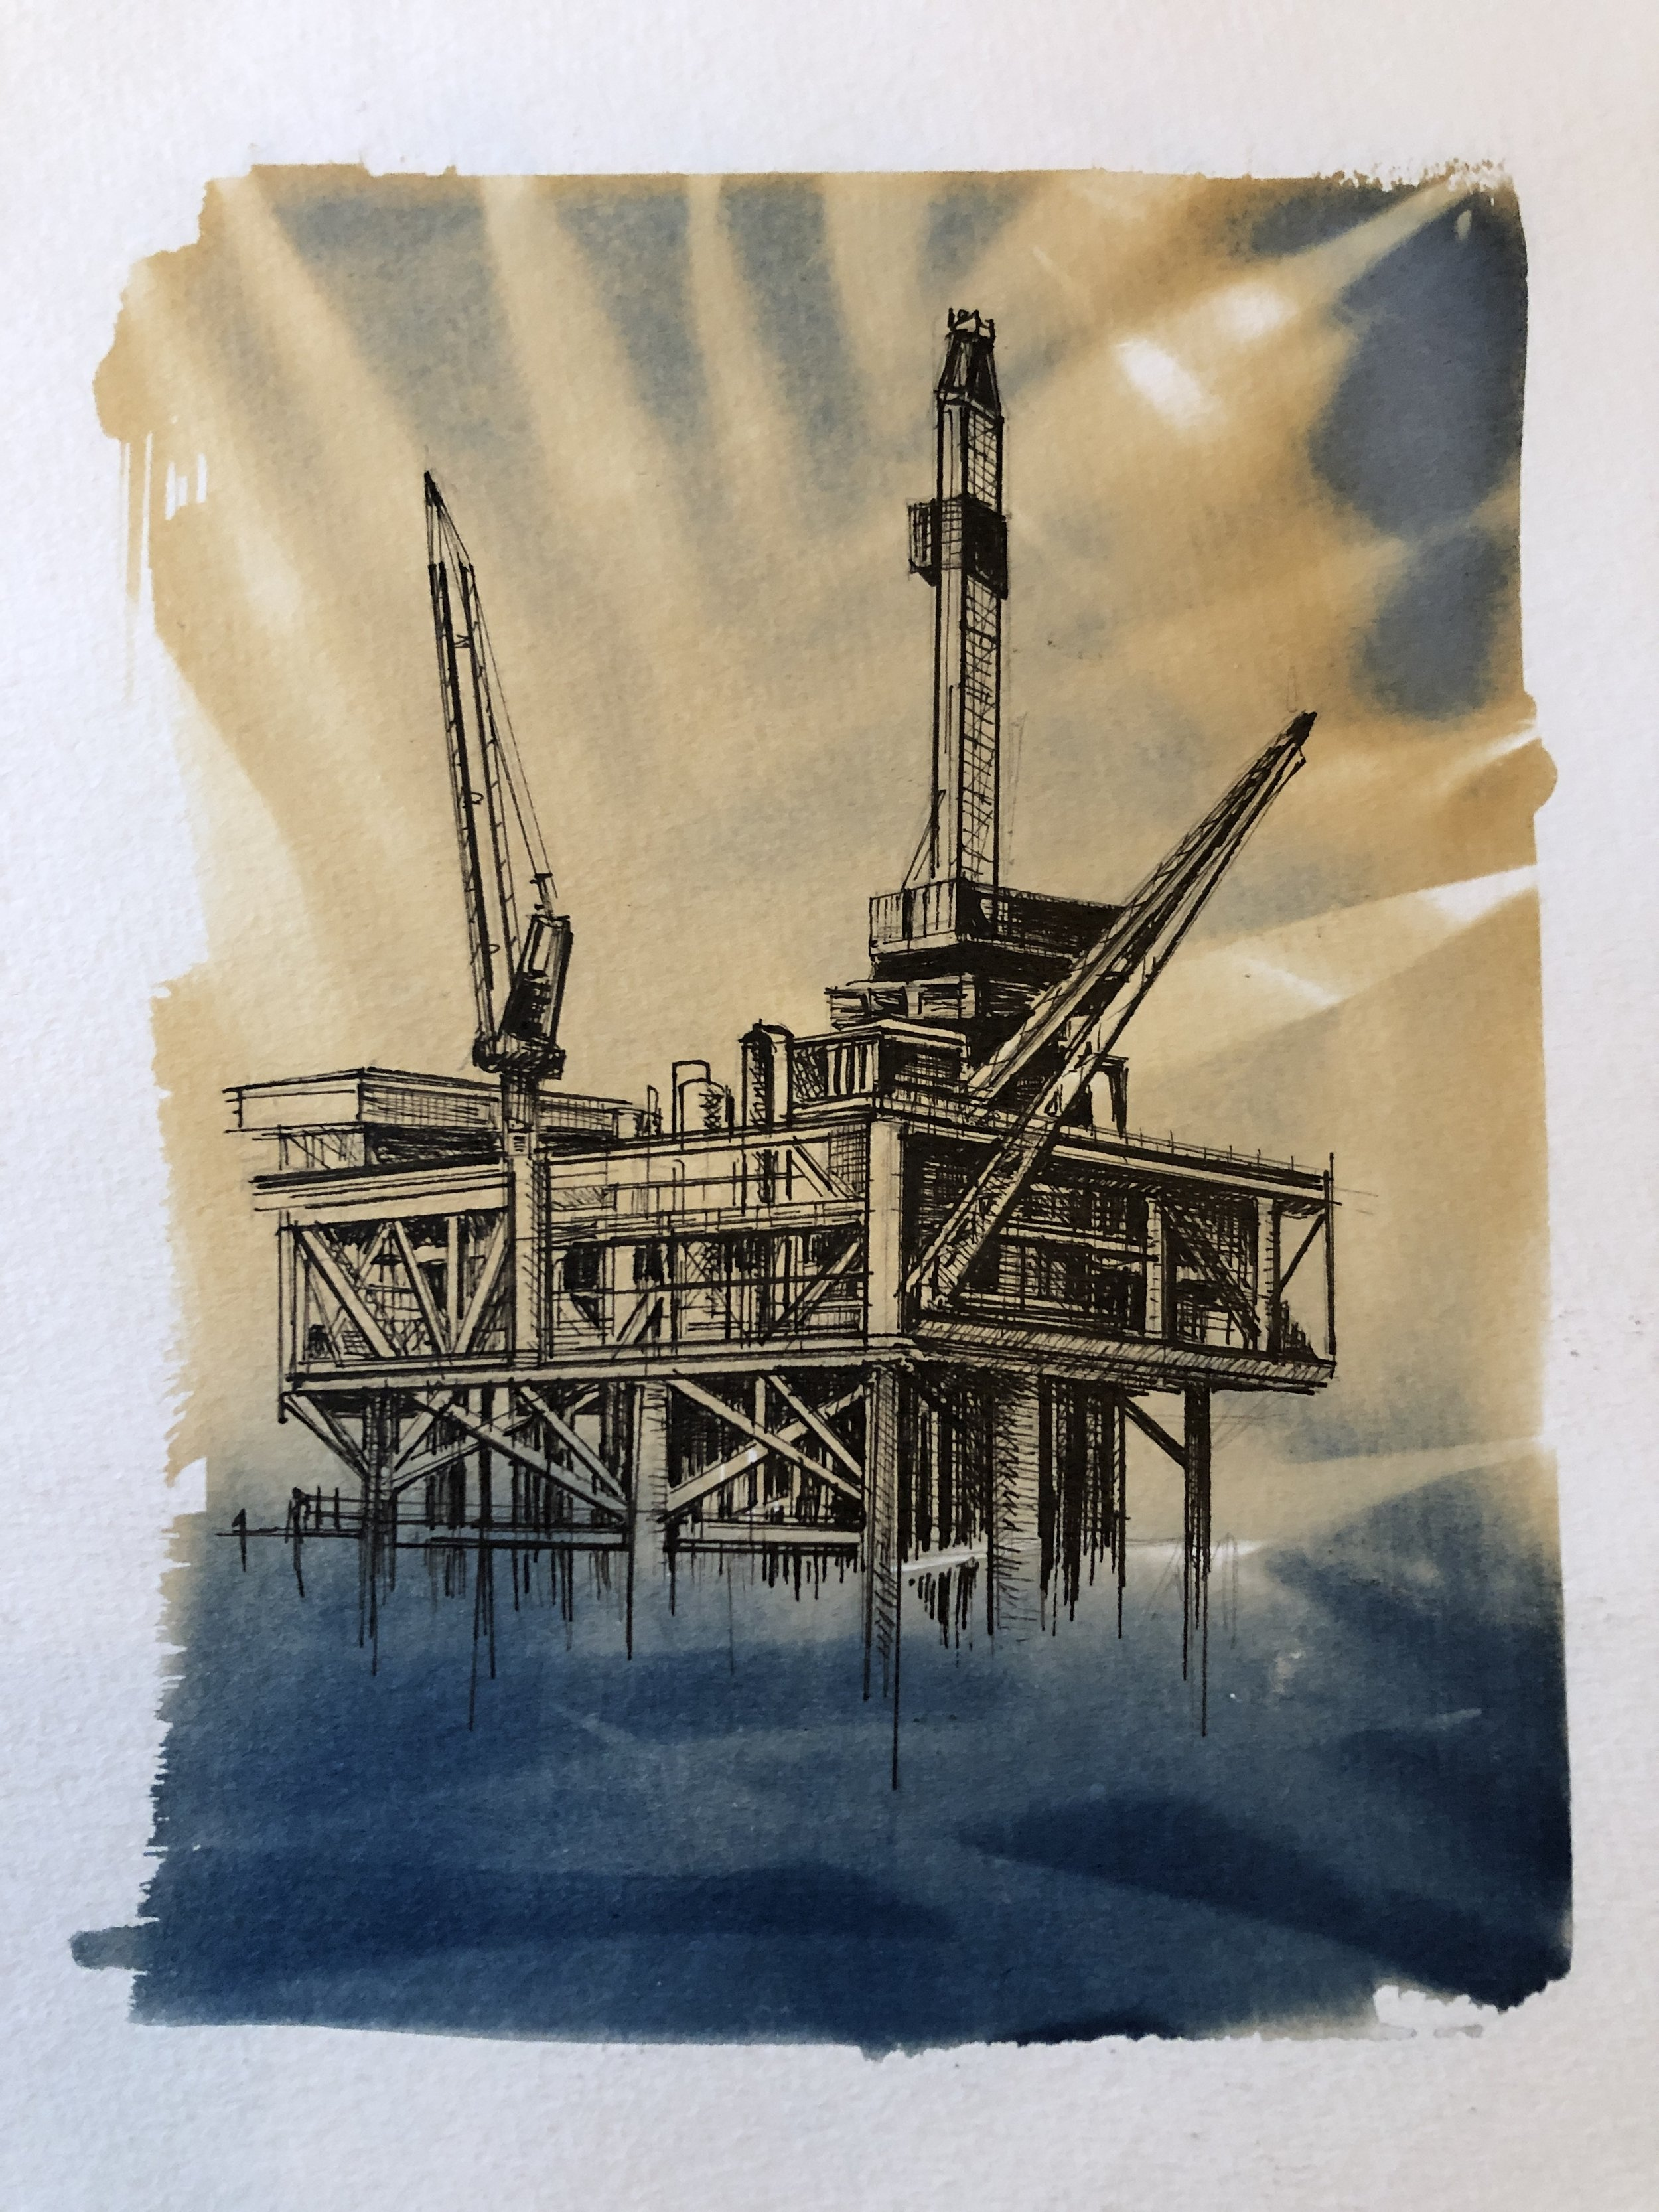 Marie Craig,  Entanglement 8 (offshore rig)  pen and ink on toned cyanotype photograph, 6 x 8 inches.